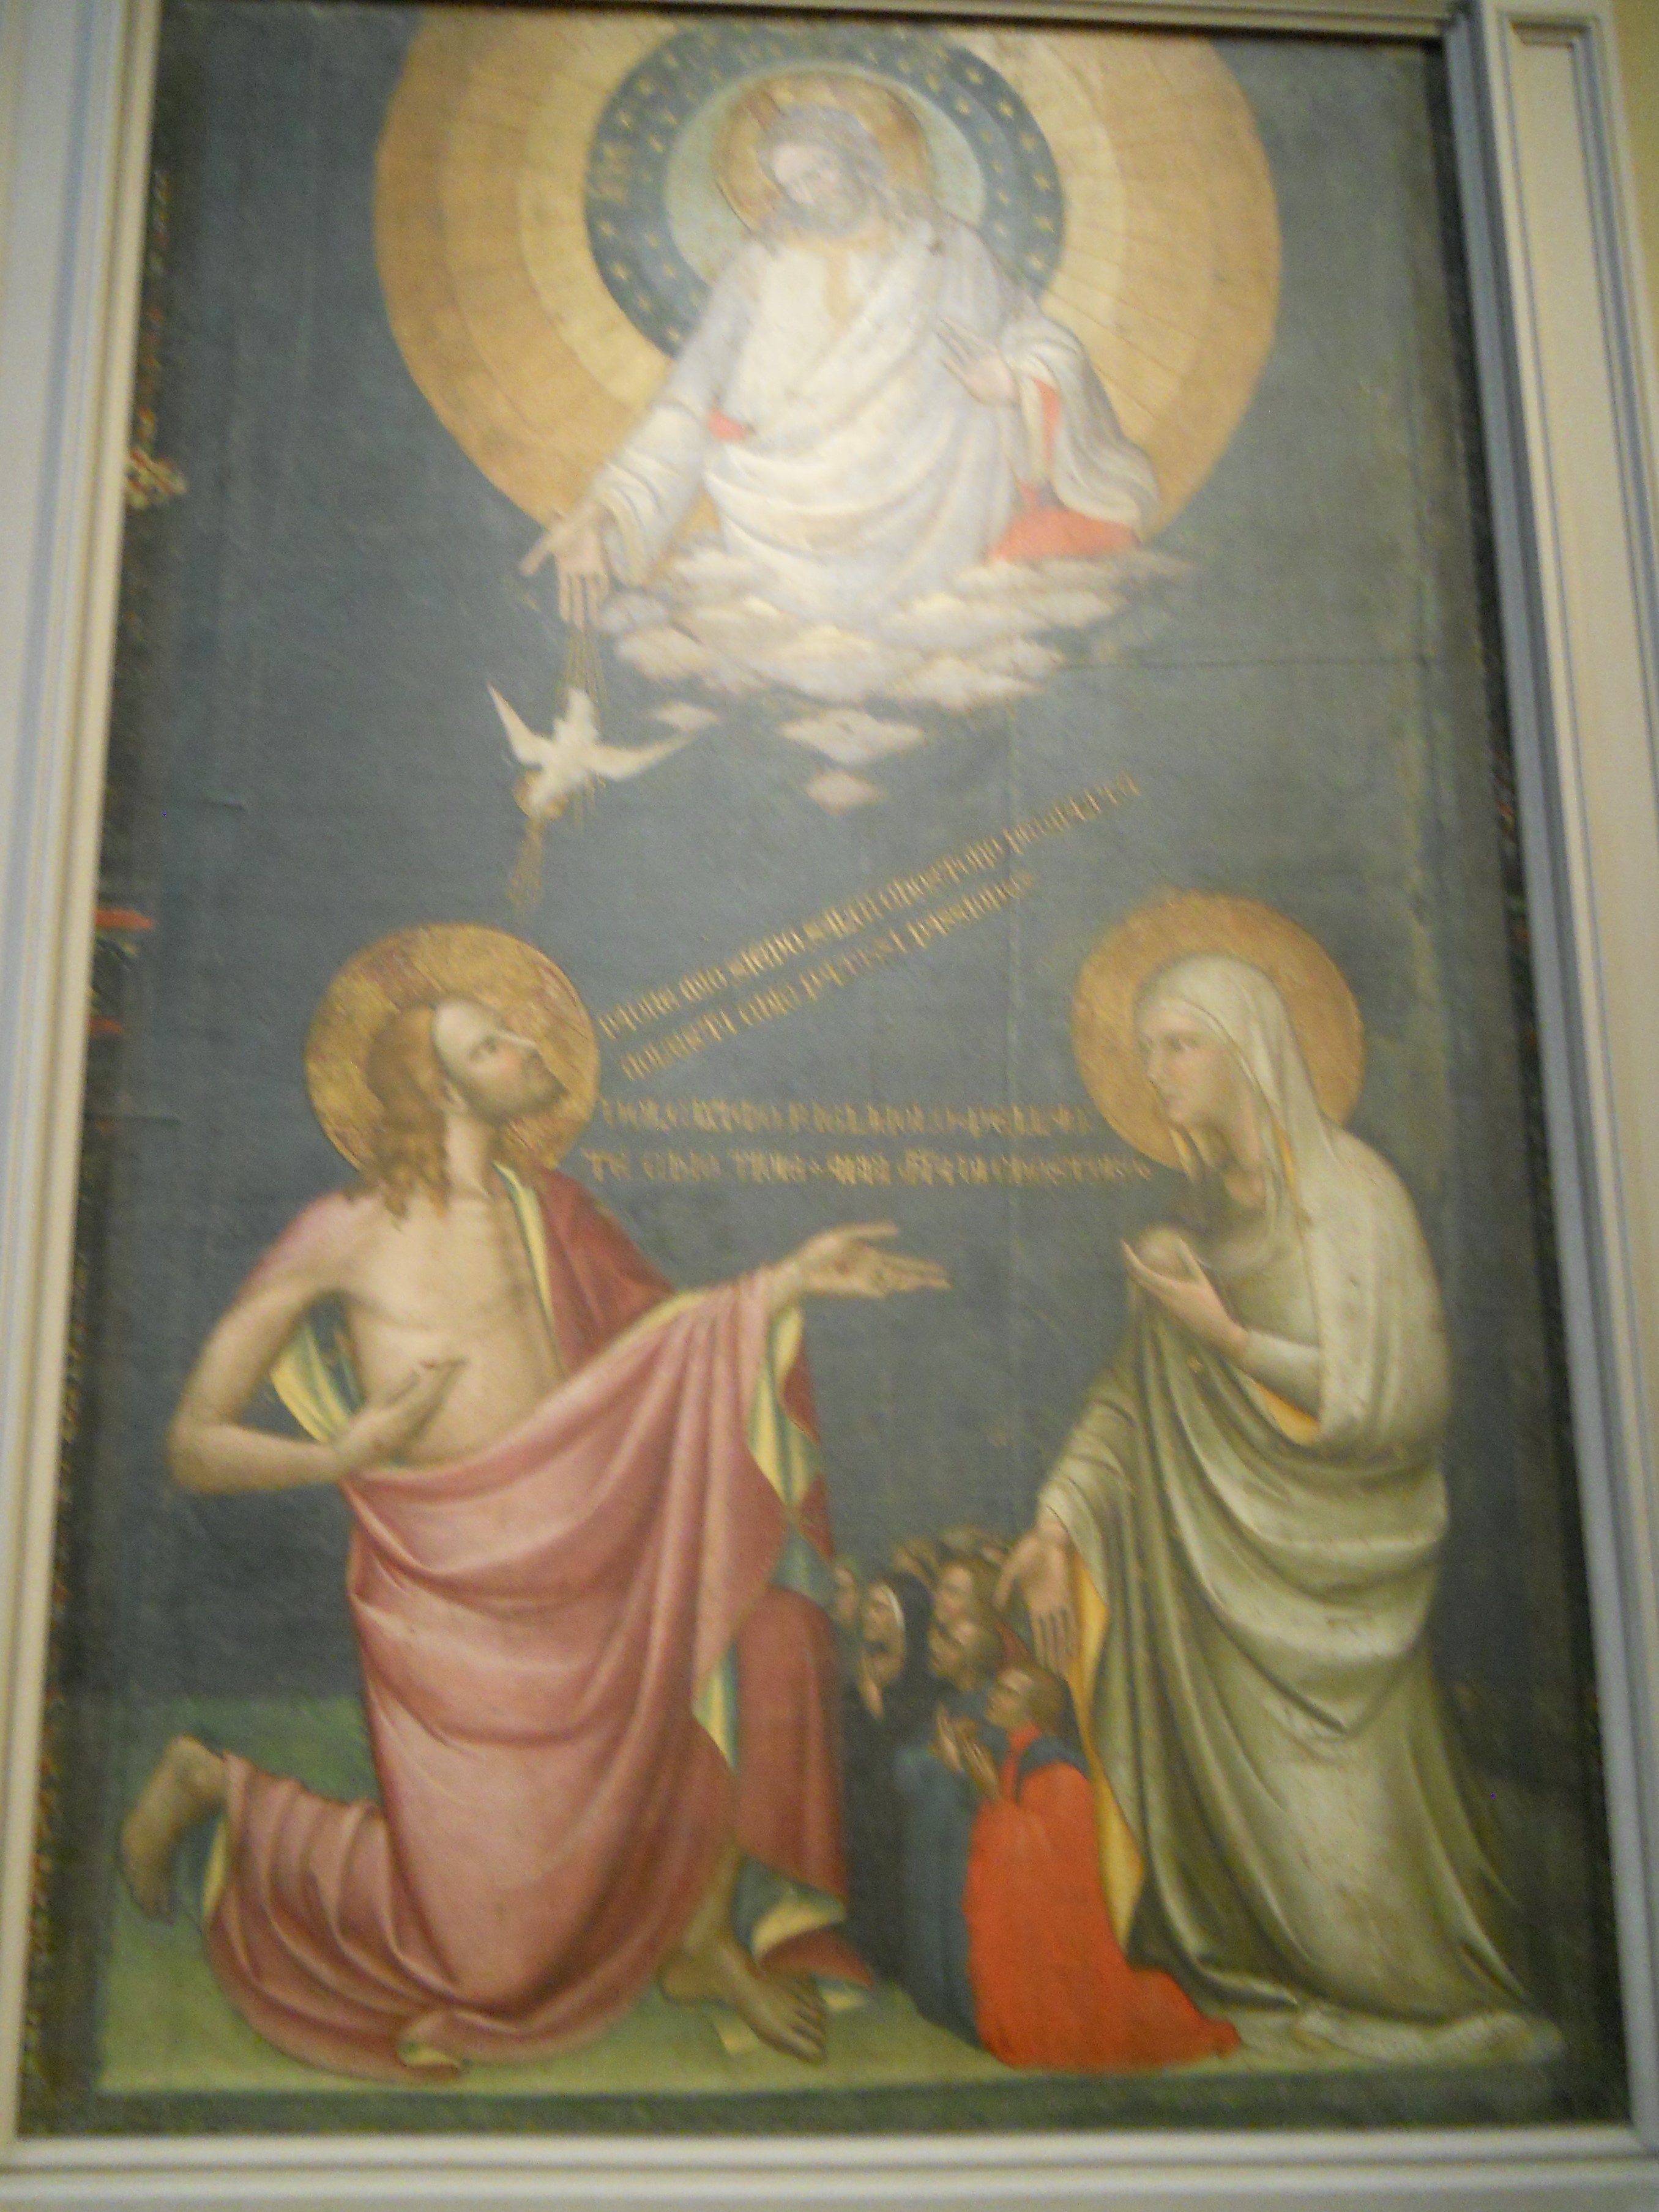 A photo of a tapestry in the Metropolitan Museum of Art, of the ArchAngel Gabriel and the Annunciation